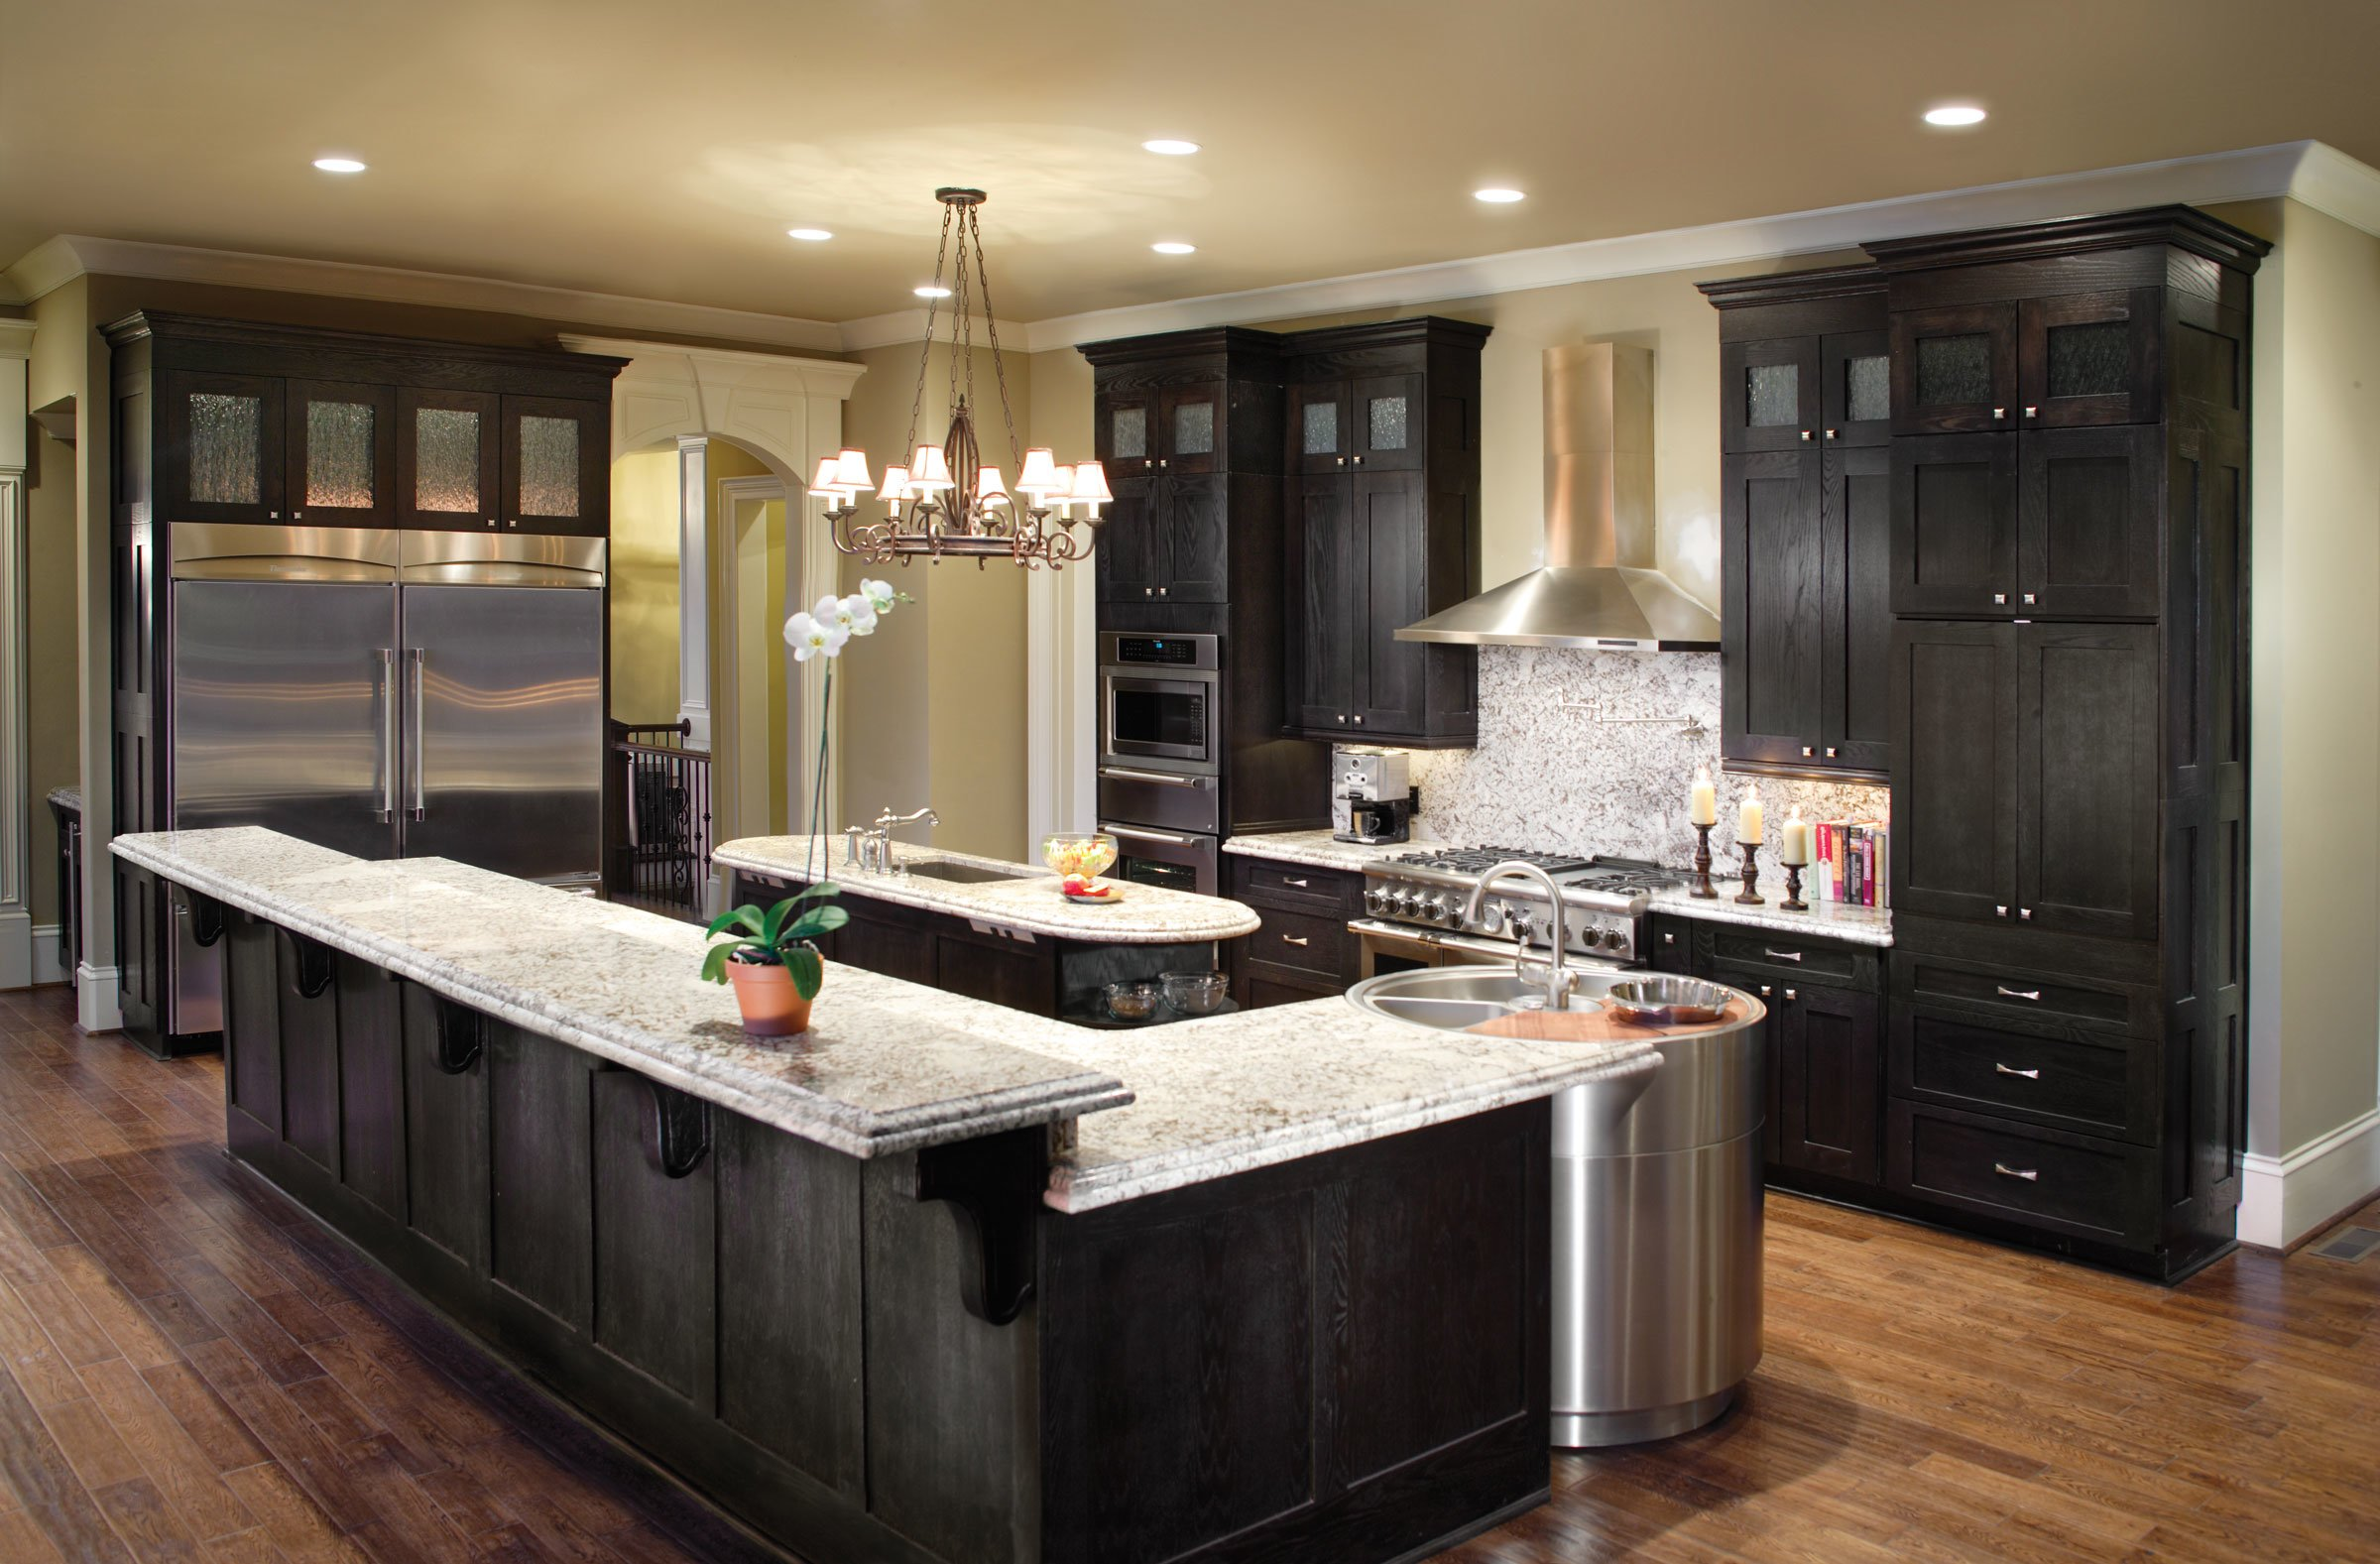 Kitchen Islands & Peninsulas | Design Line Kitchens in Sea ...